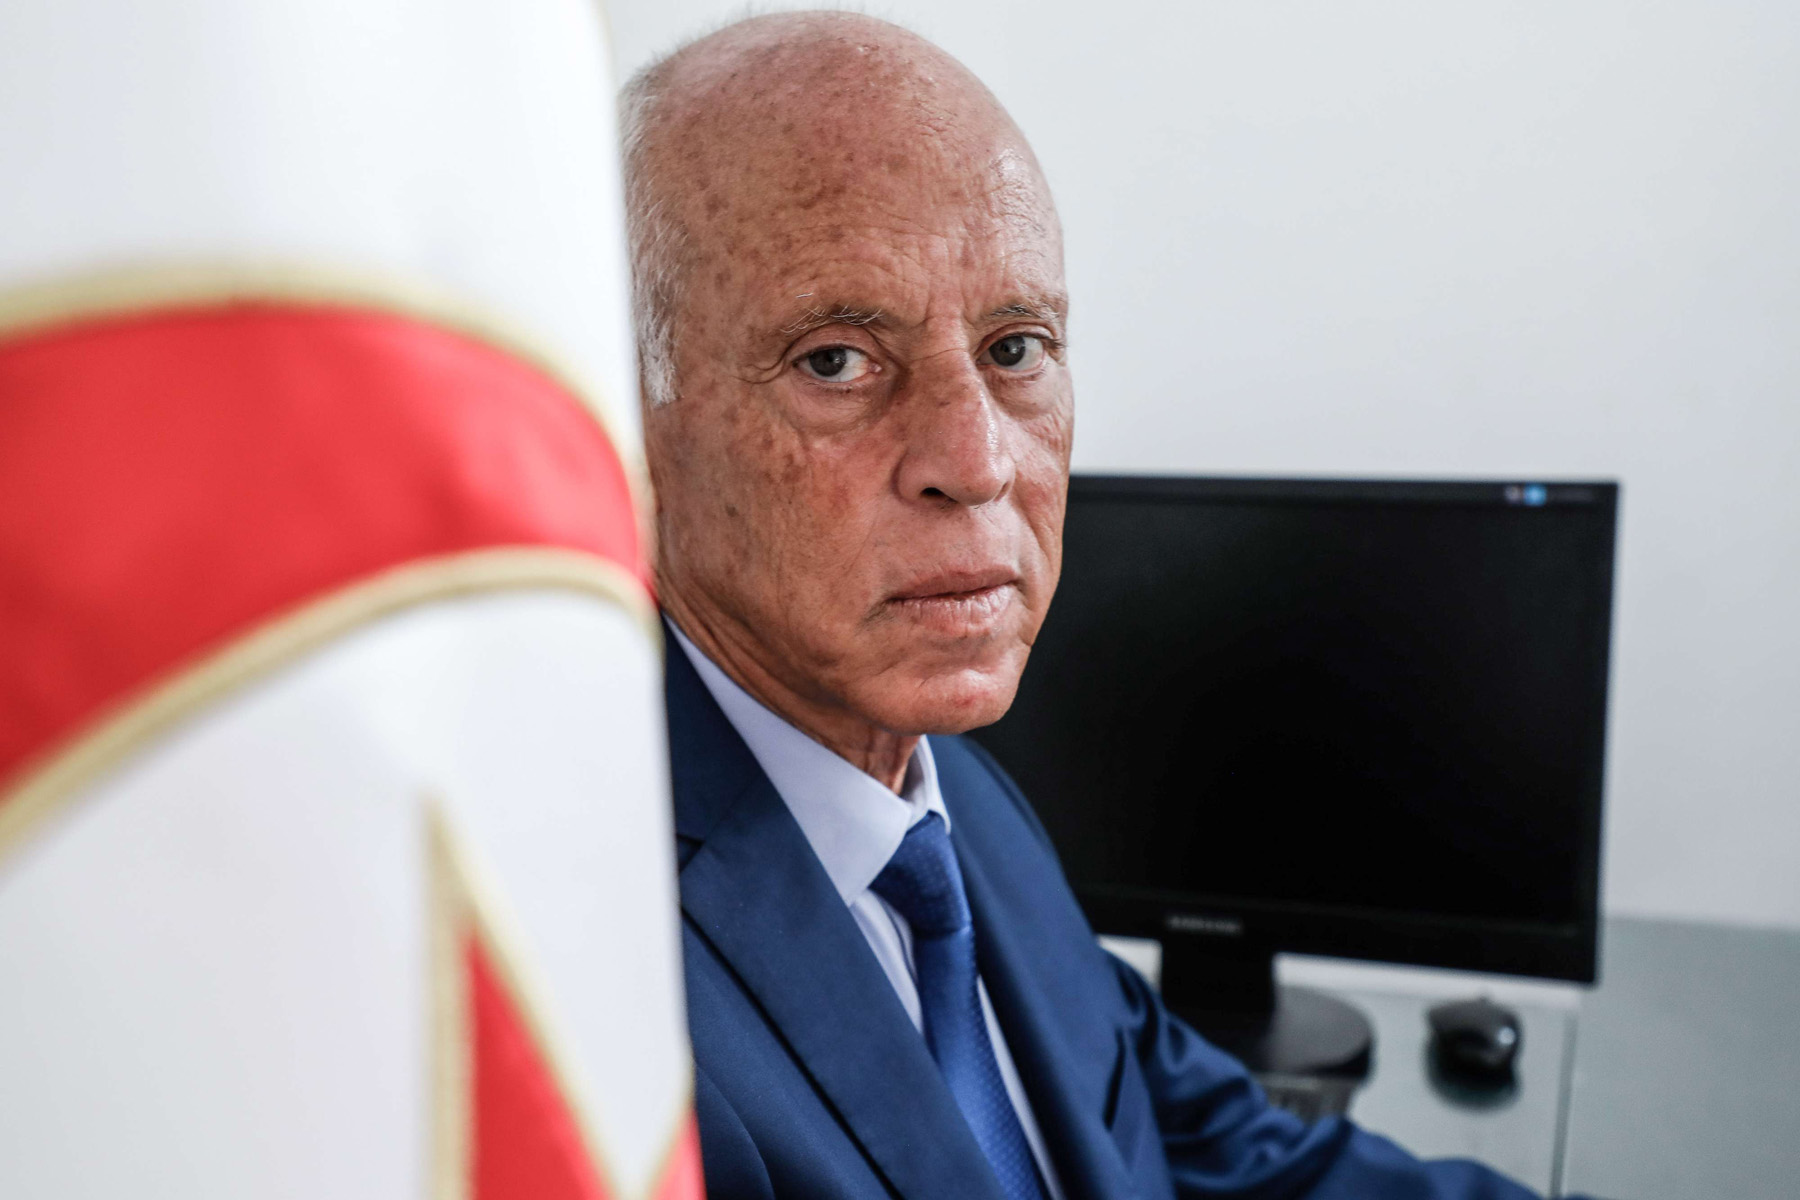 Presidential candidate Kais Saied, Tunisian jurist and professor of constitutional law, poses for a picture at his office in Tunis, Semptember 16. (dpa)